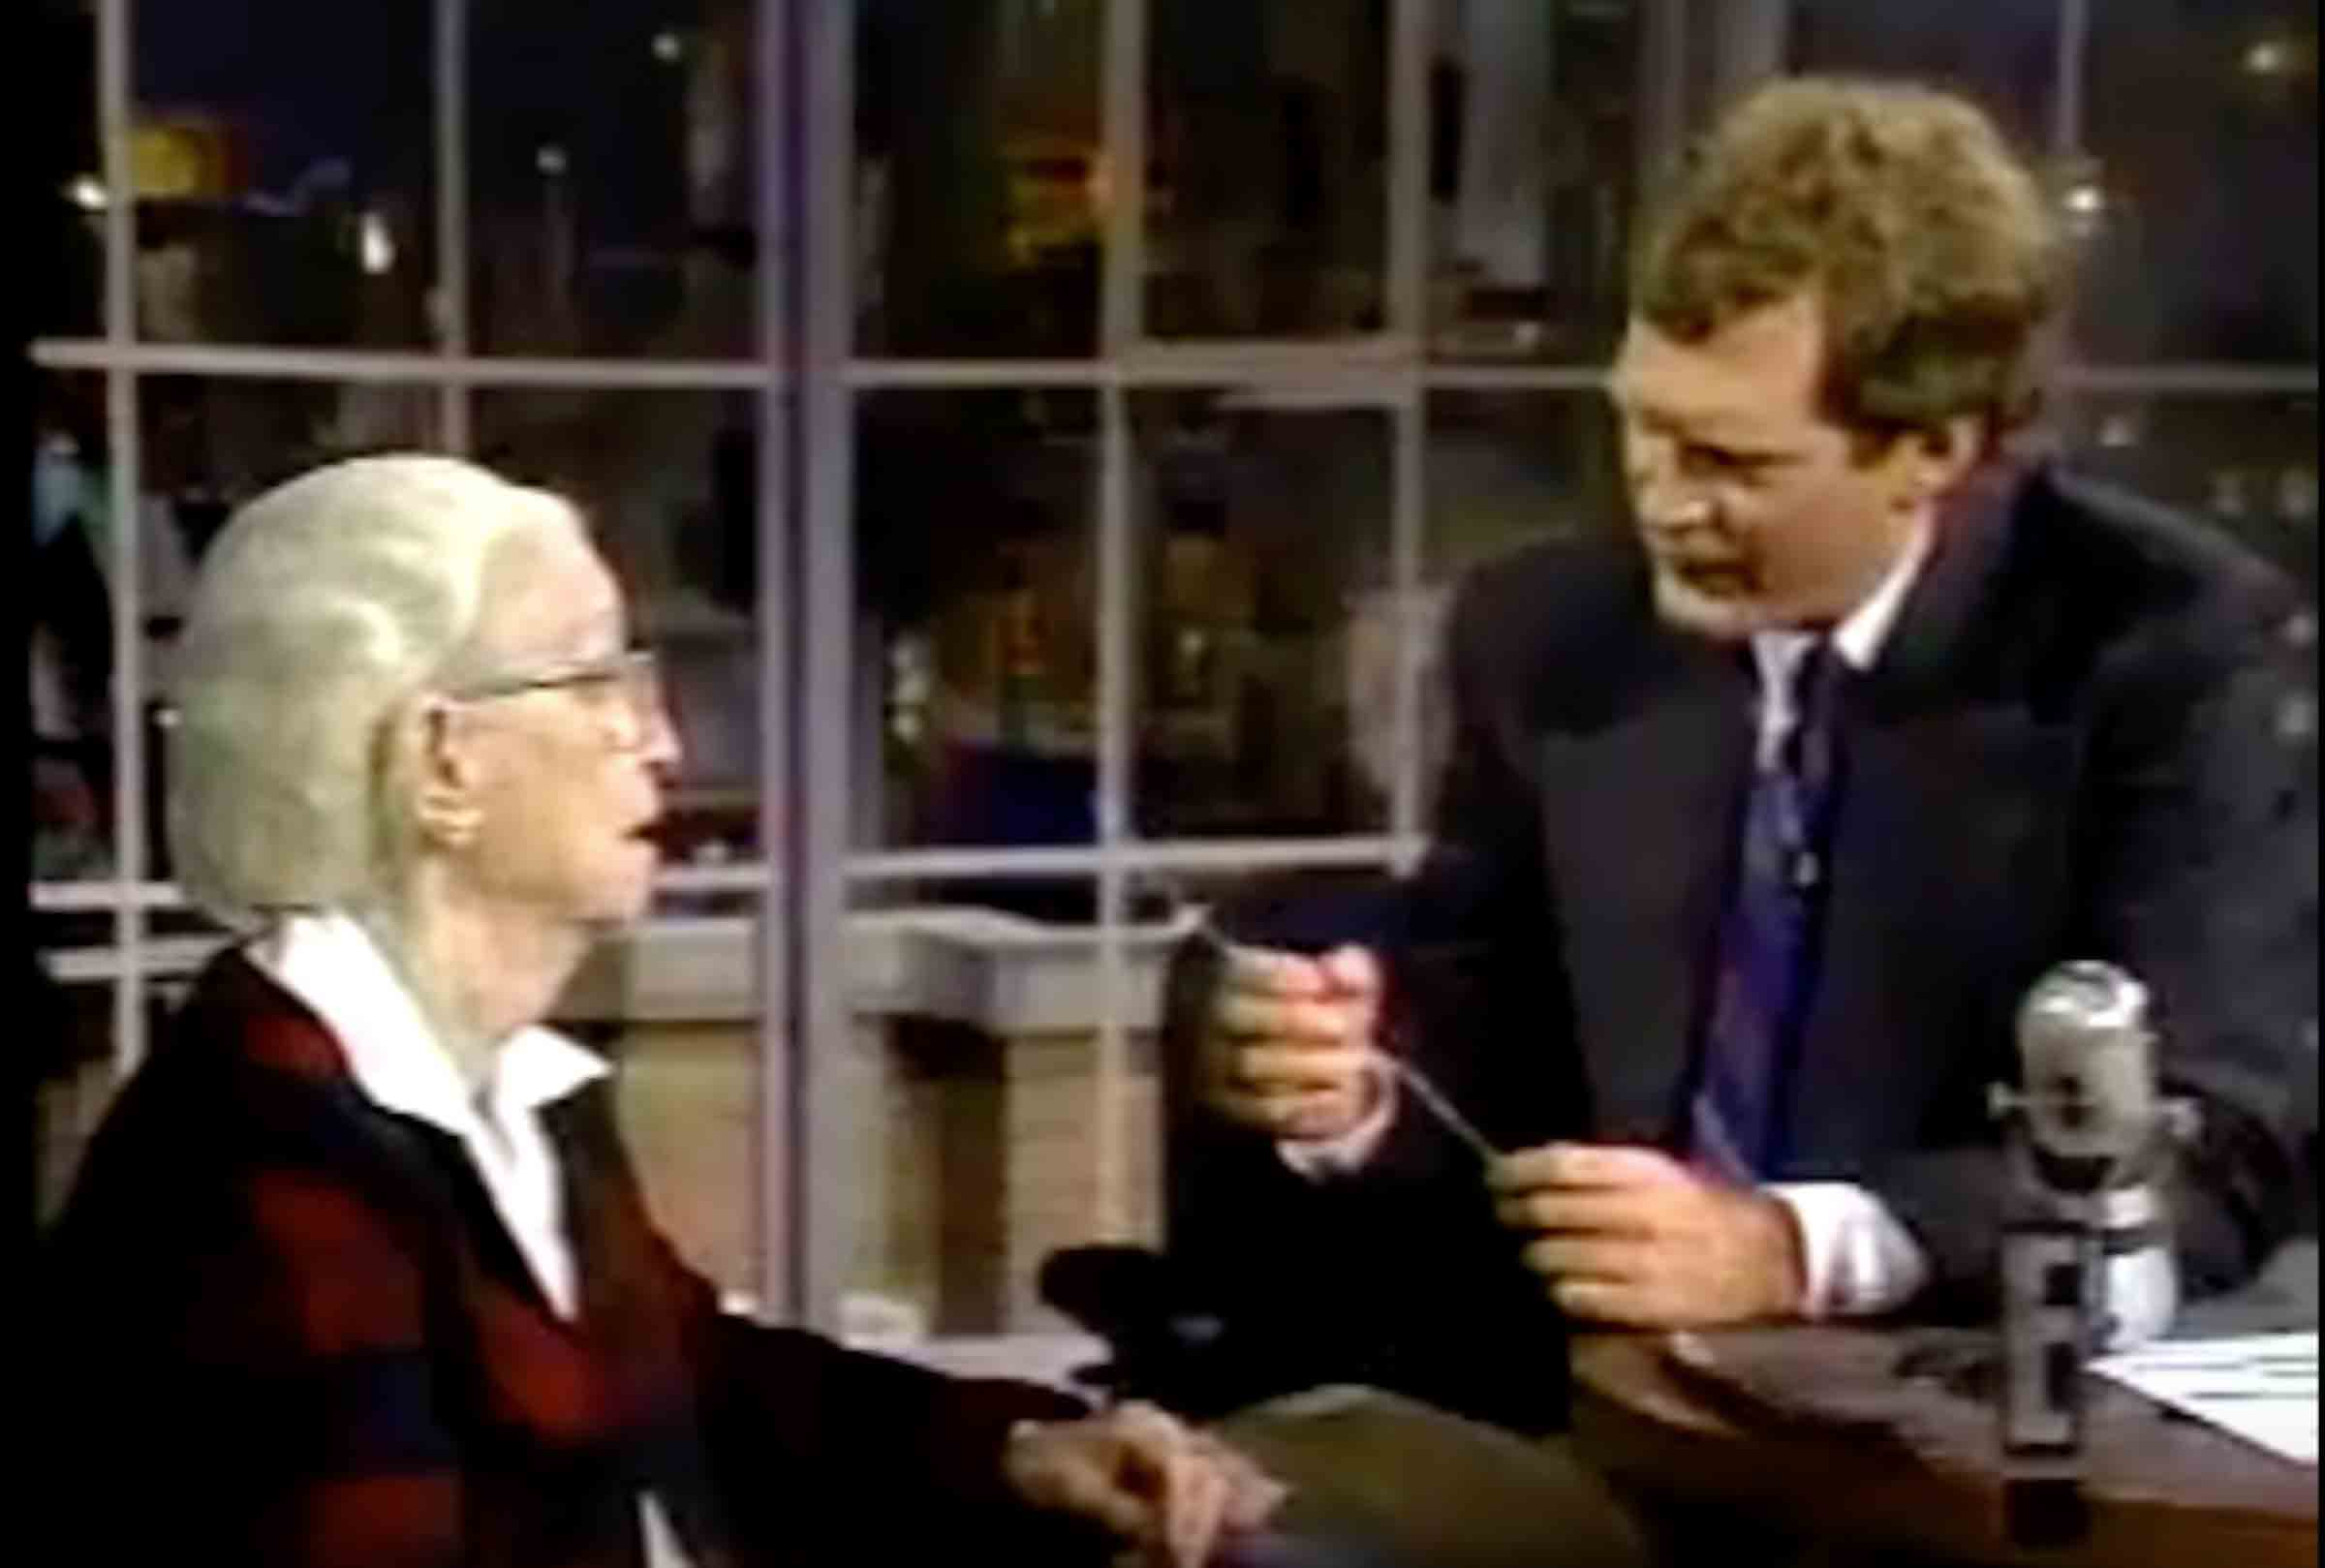 Check out Hoppers 1986 interview on the The Late Show with David Letterman!